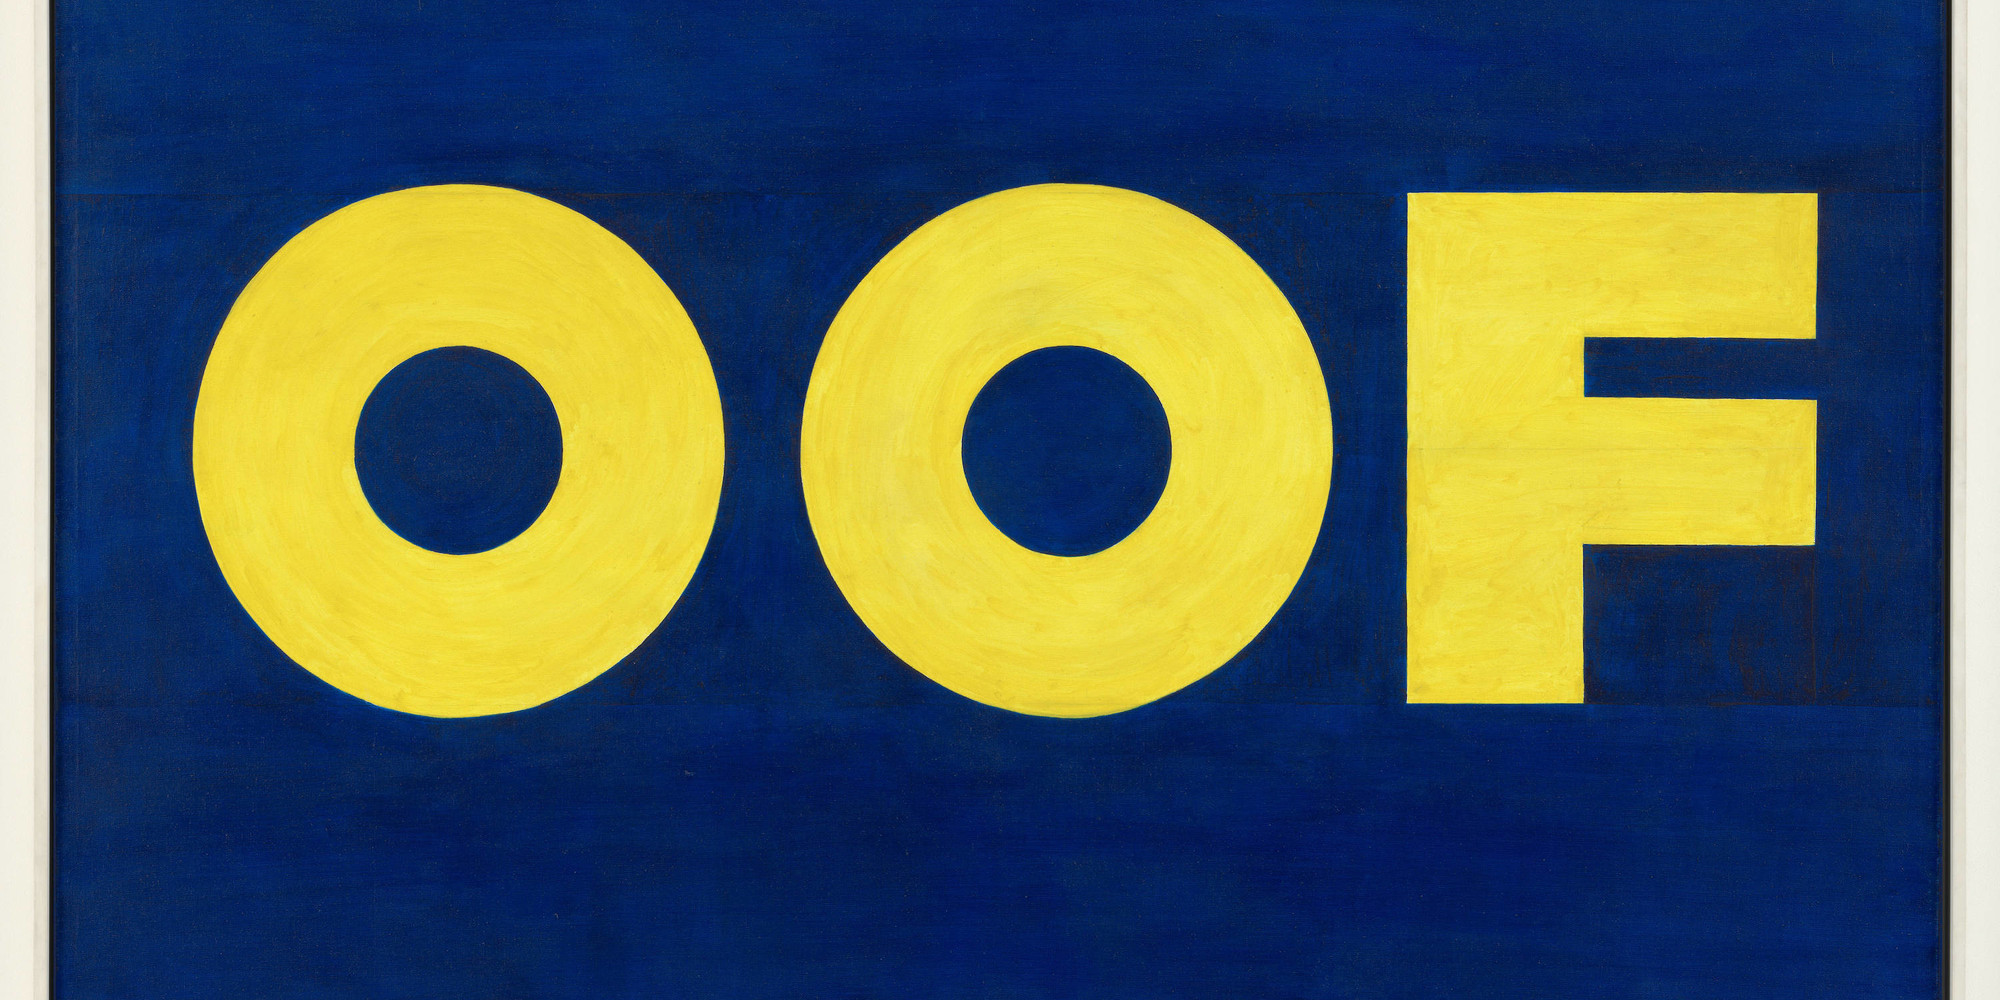 "Edward Ruscha. OOF. 1962 (reworked 1963). Oil on canvas, 71 ½ × 67"" (181.5 × 170.2 cm). The Museum of Modern Art, New York. Gift of Agnes Gund, the Louis and Bessie Adler Foundation, Inc., Robert and Meryl Meltzer, Jerry I. Speyer, Anna Marie and Robert F. Shapiro, Emily and Jerry Spiegel, an anonymous donor, and purchase. © 2020 Edward Ruscha"